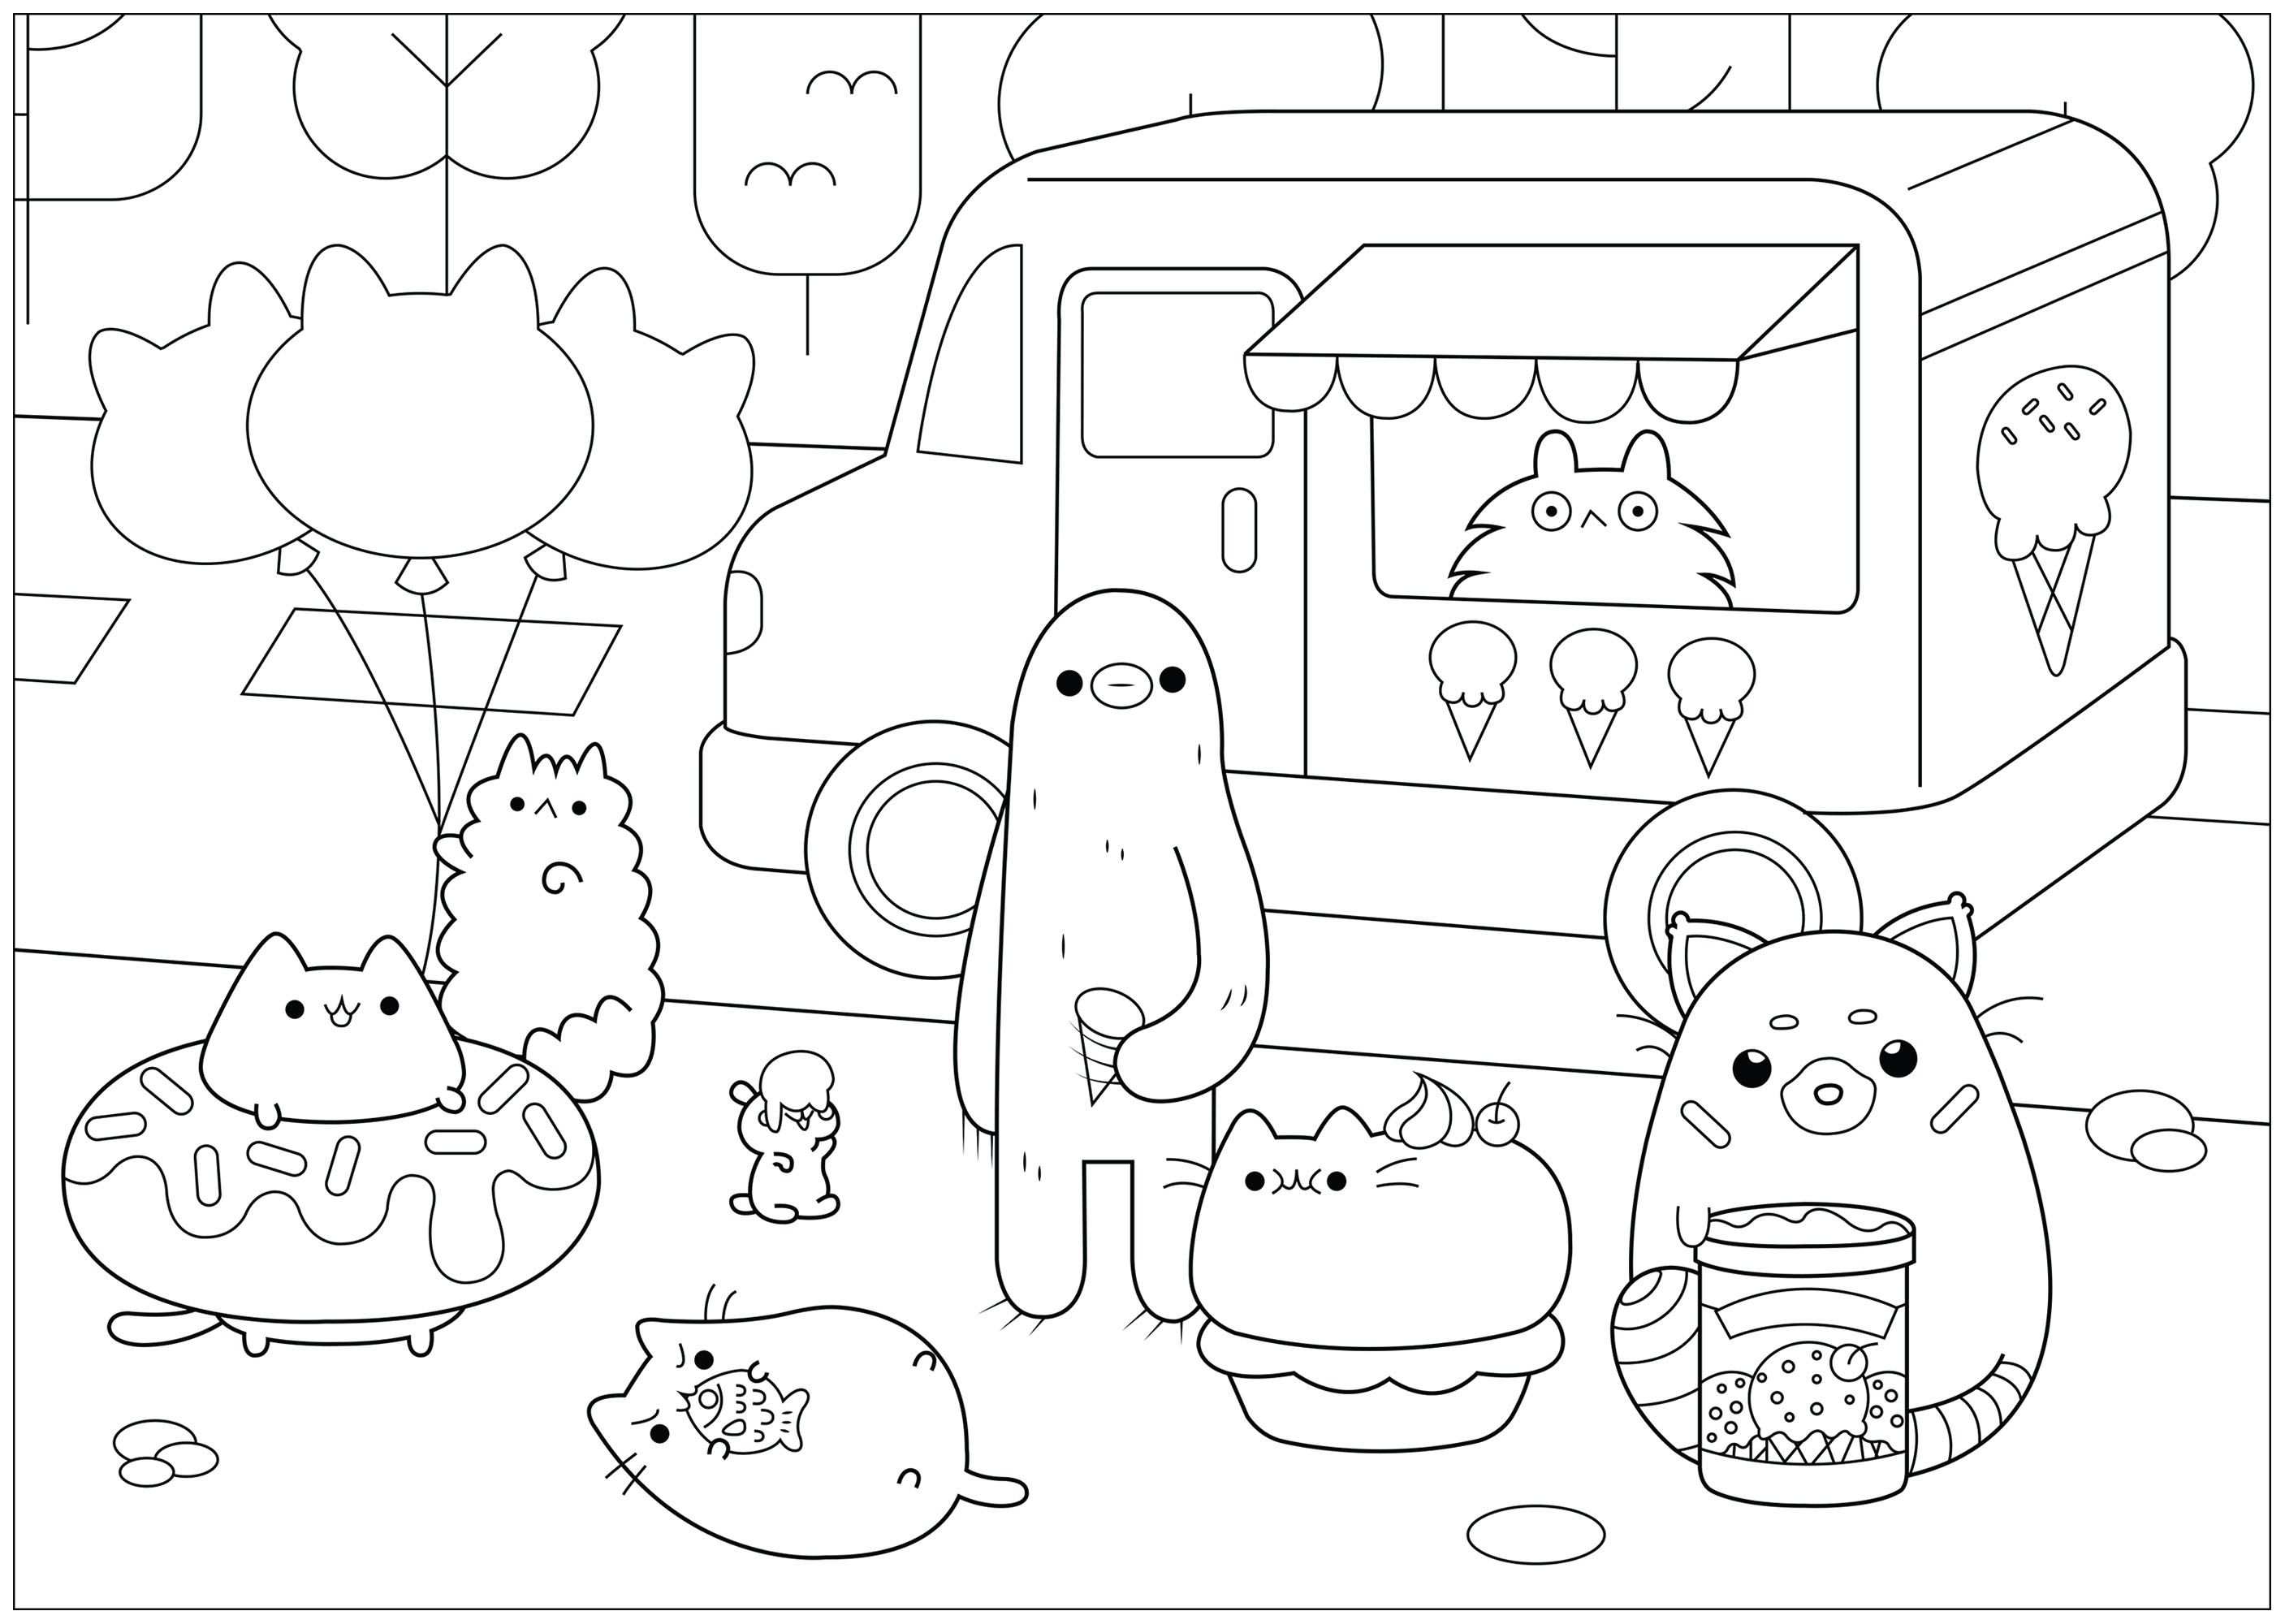 Ice Cream Shop Pusheen Doodle Art Doodling Coloring Pages For